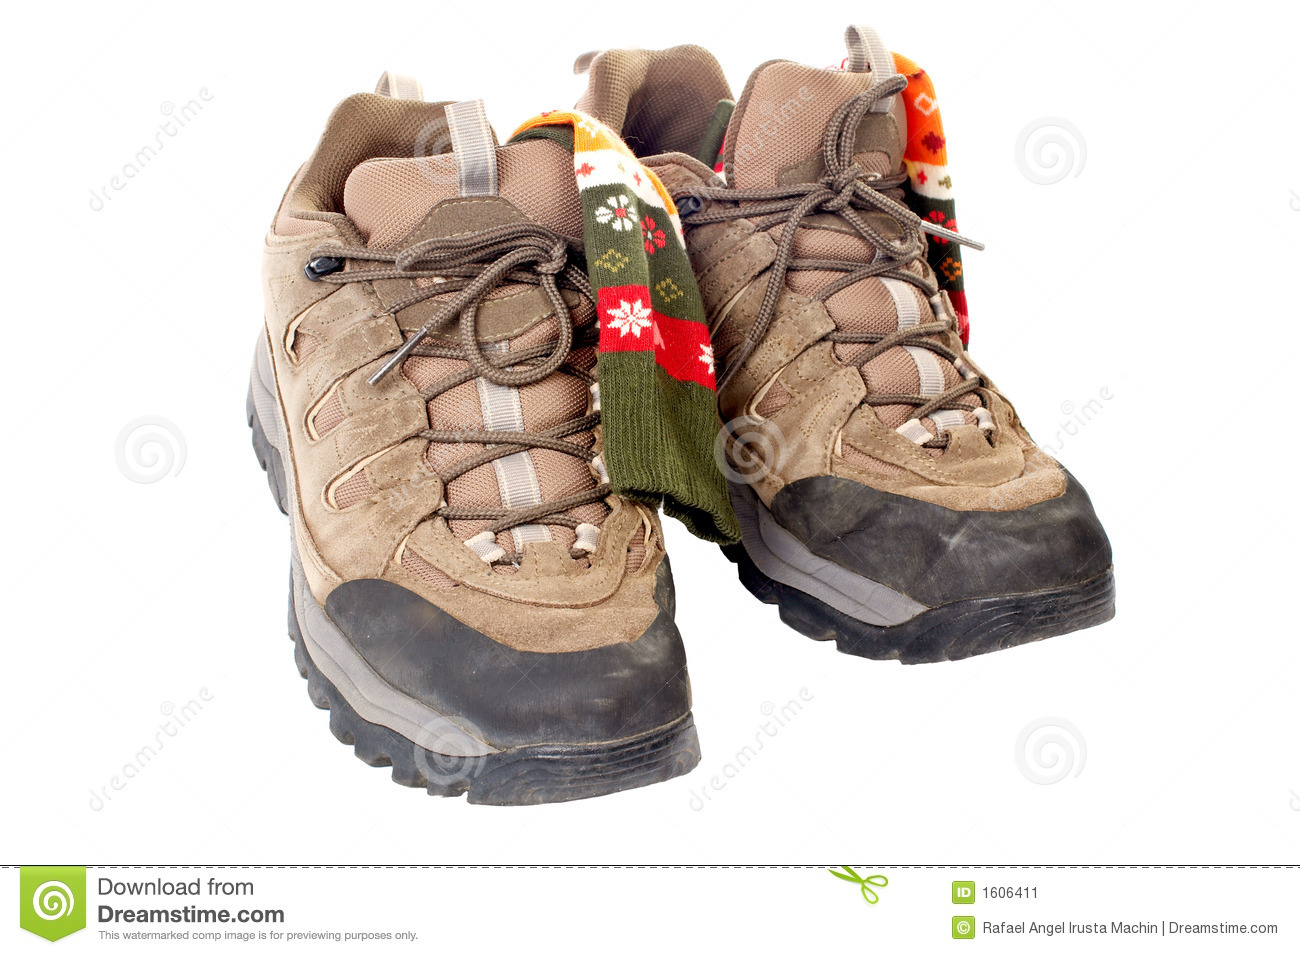 Used Hiking Boots And Socks Stock Image - Image: 1606411